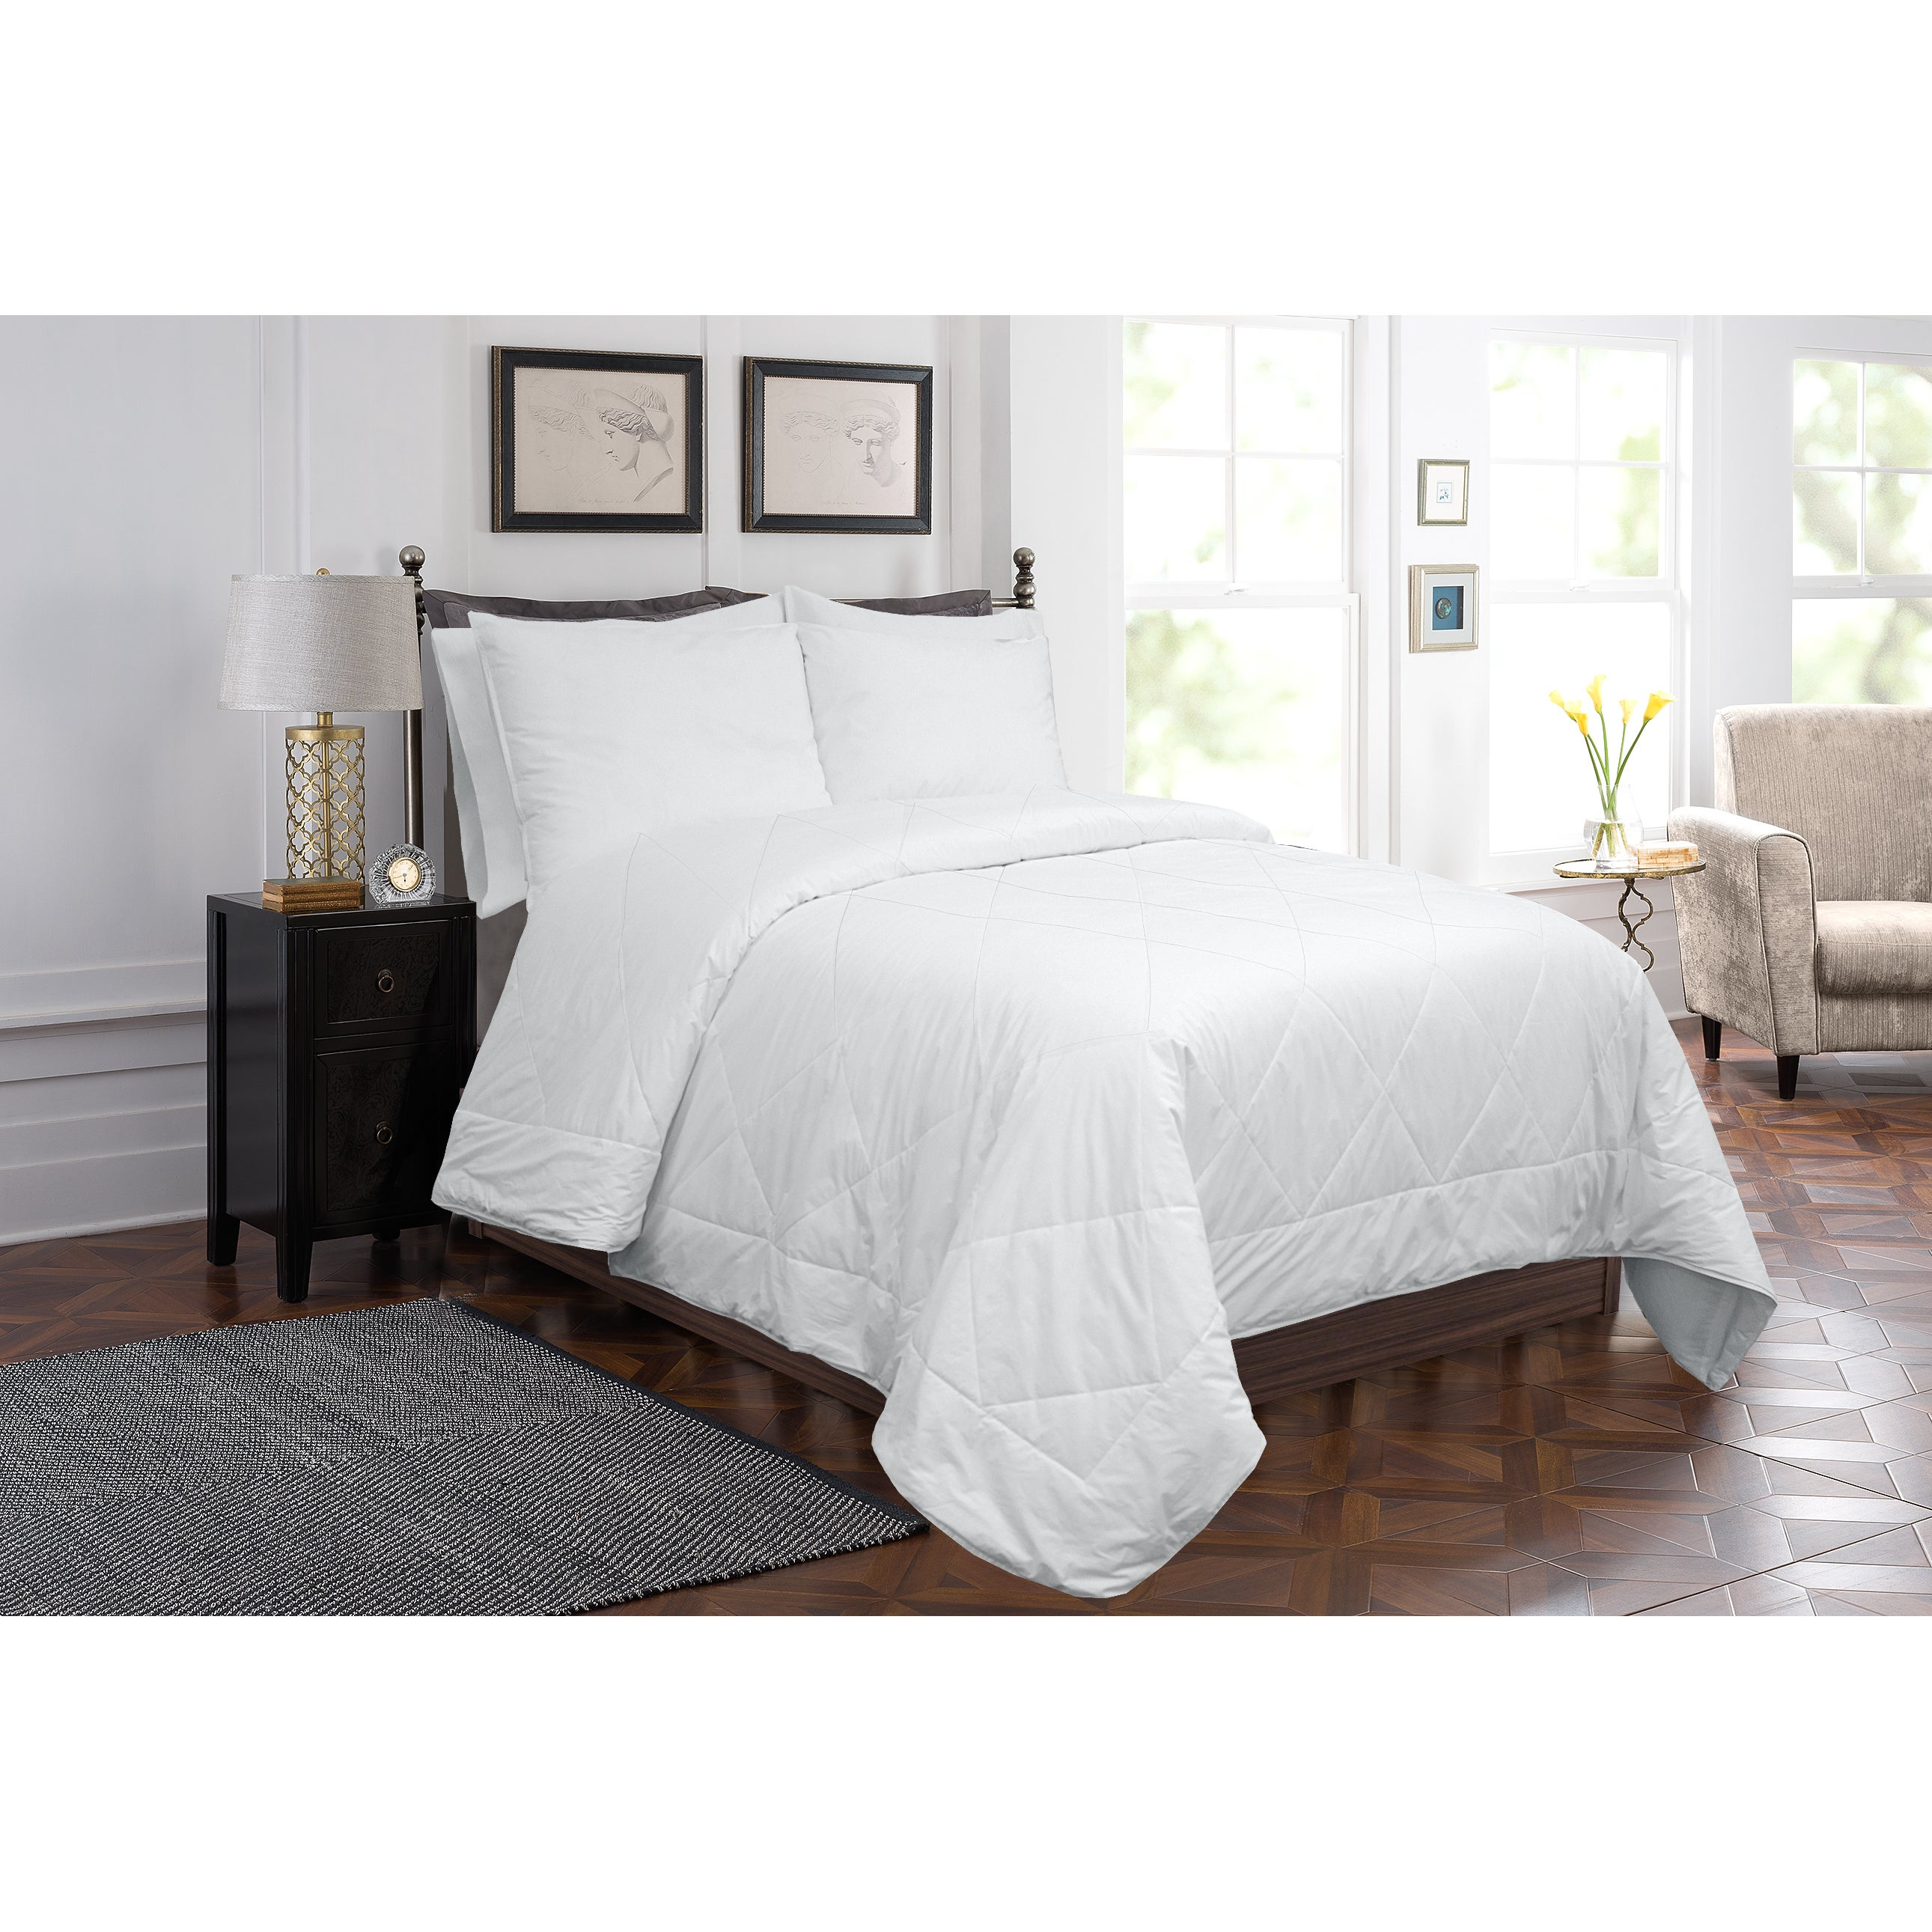 for quilts living quilt and comforter luxury home silkkipeittotupla double silk eligena mulberry